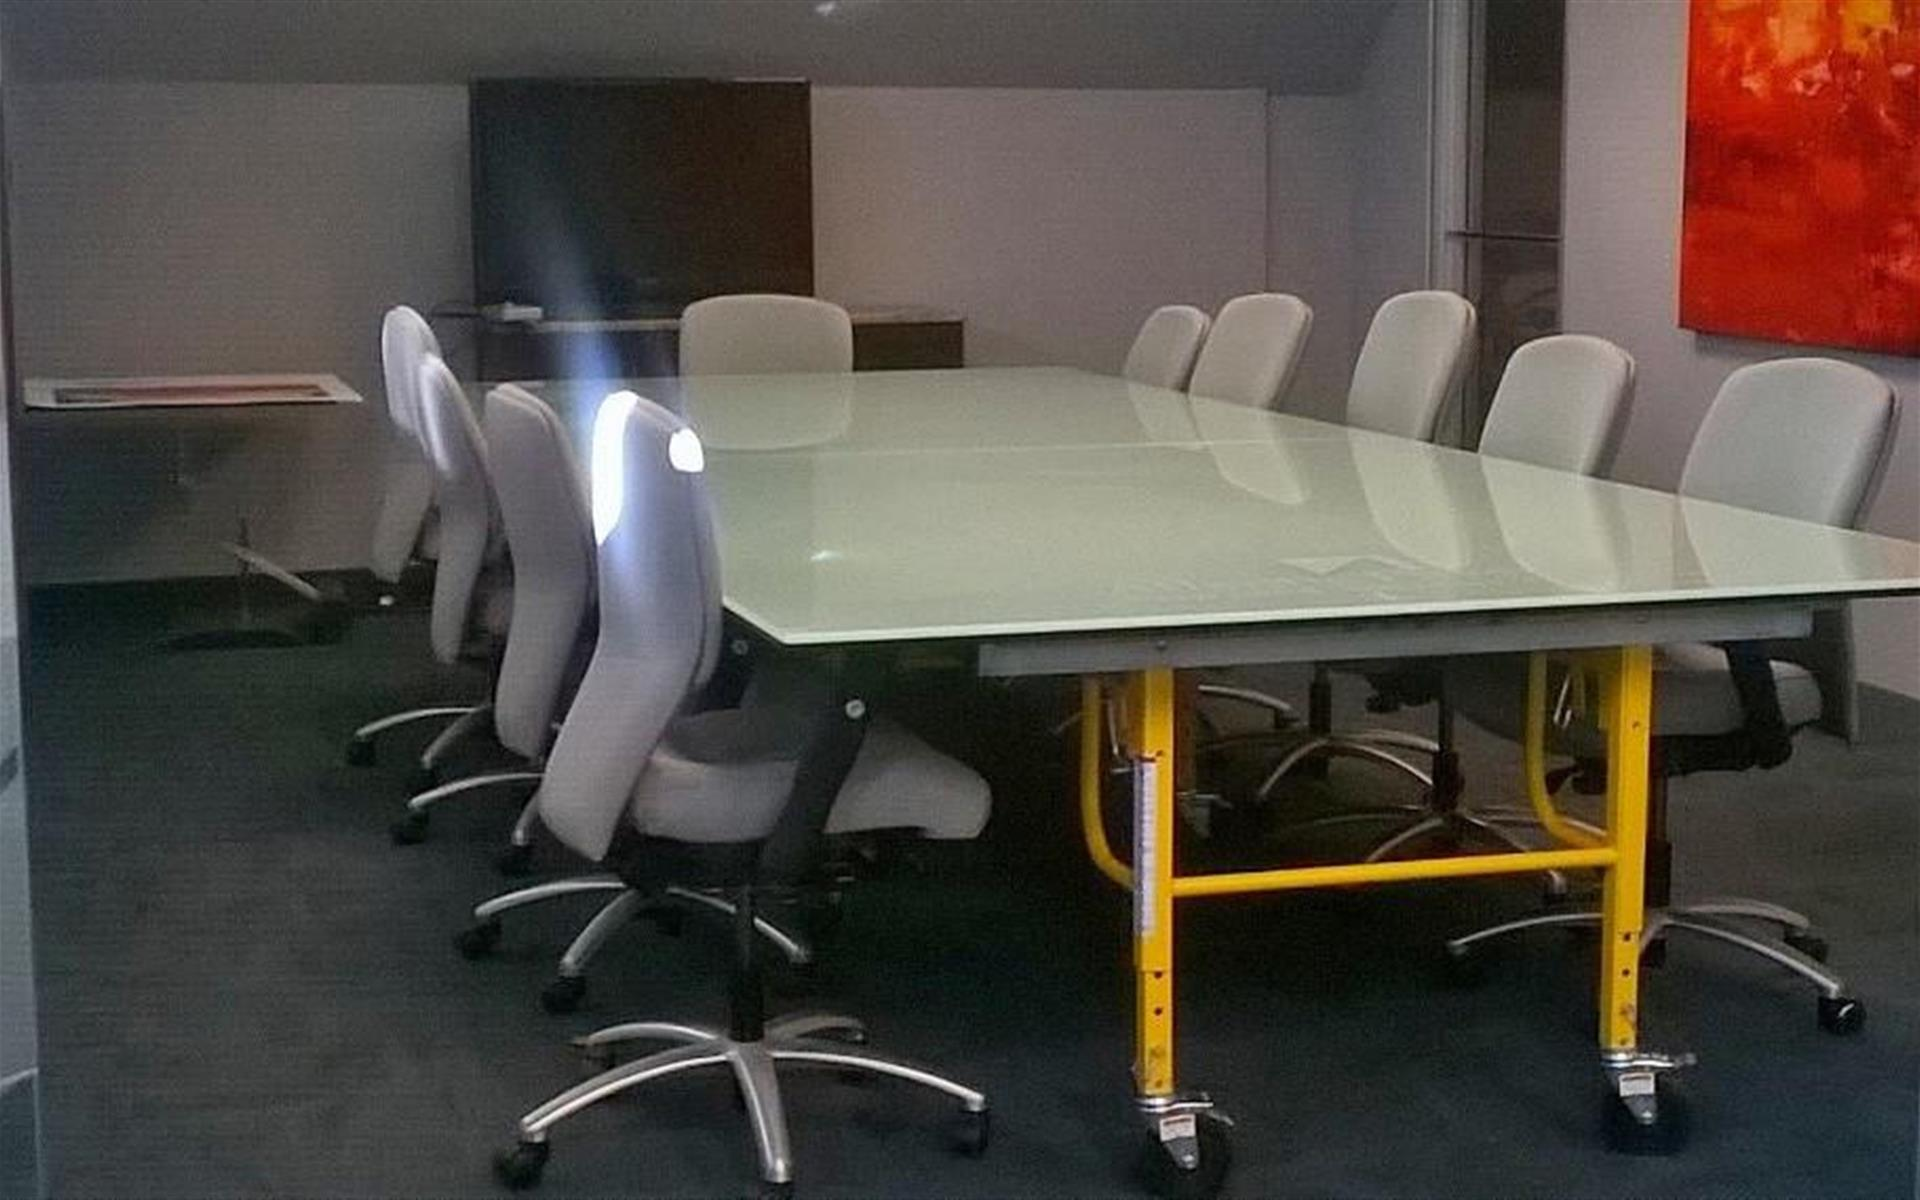 Legal750 - Large Meeting Room - Seats up to 20